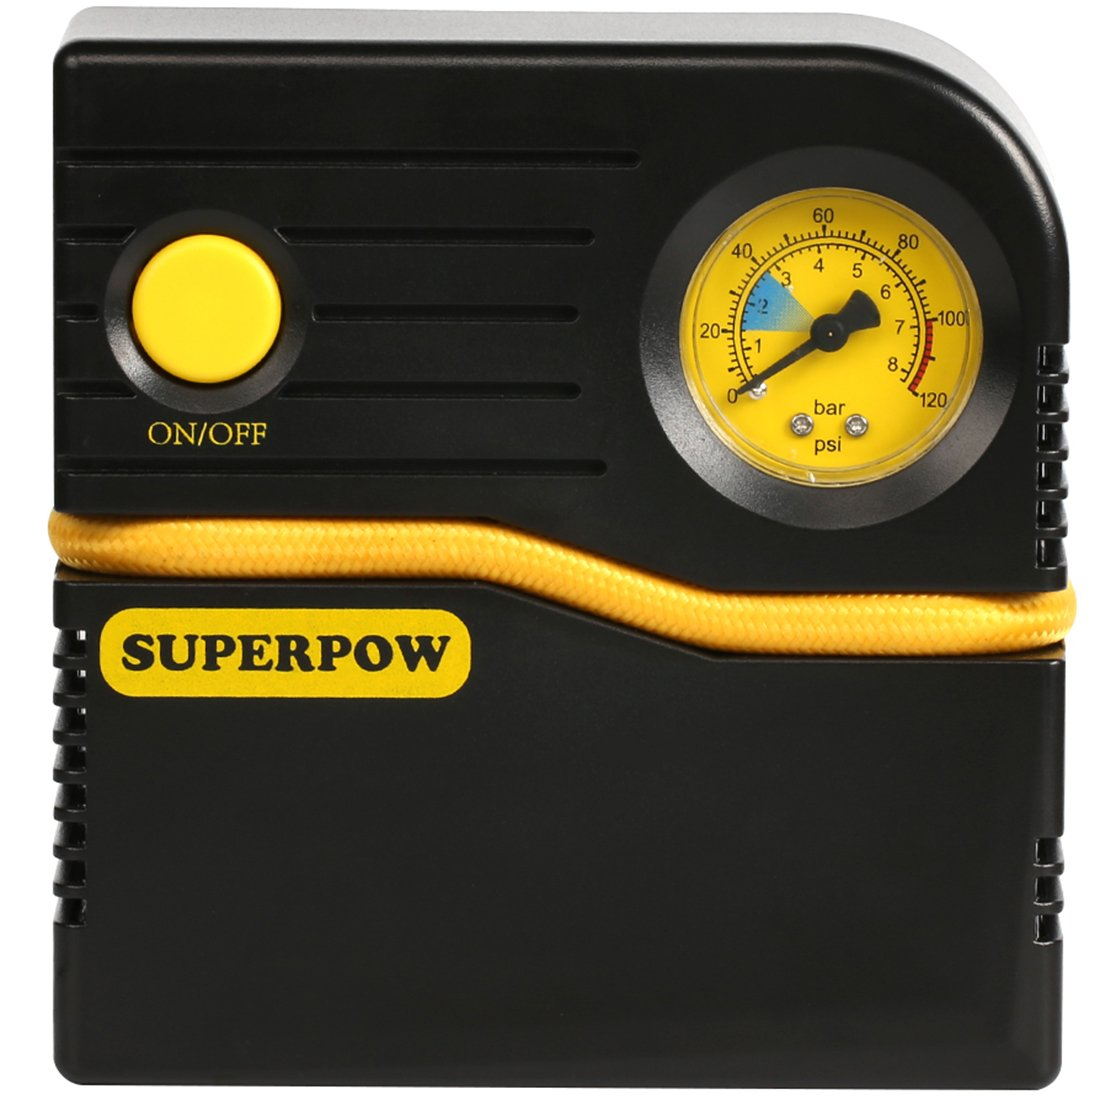 Leelbox Air Compressor Portable Auto Tire Pump,Premium Tire Inflator 12V DC For Automobile Car Motorboad Bicycle Basketballs Air Bed Mattress And Other Inflatables (Yellow black)